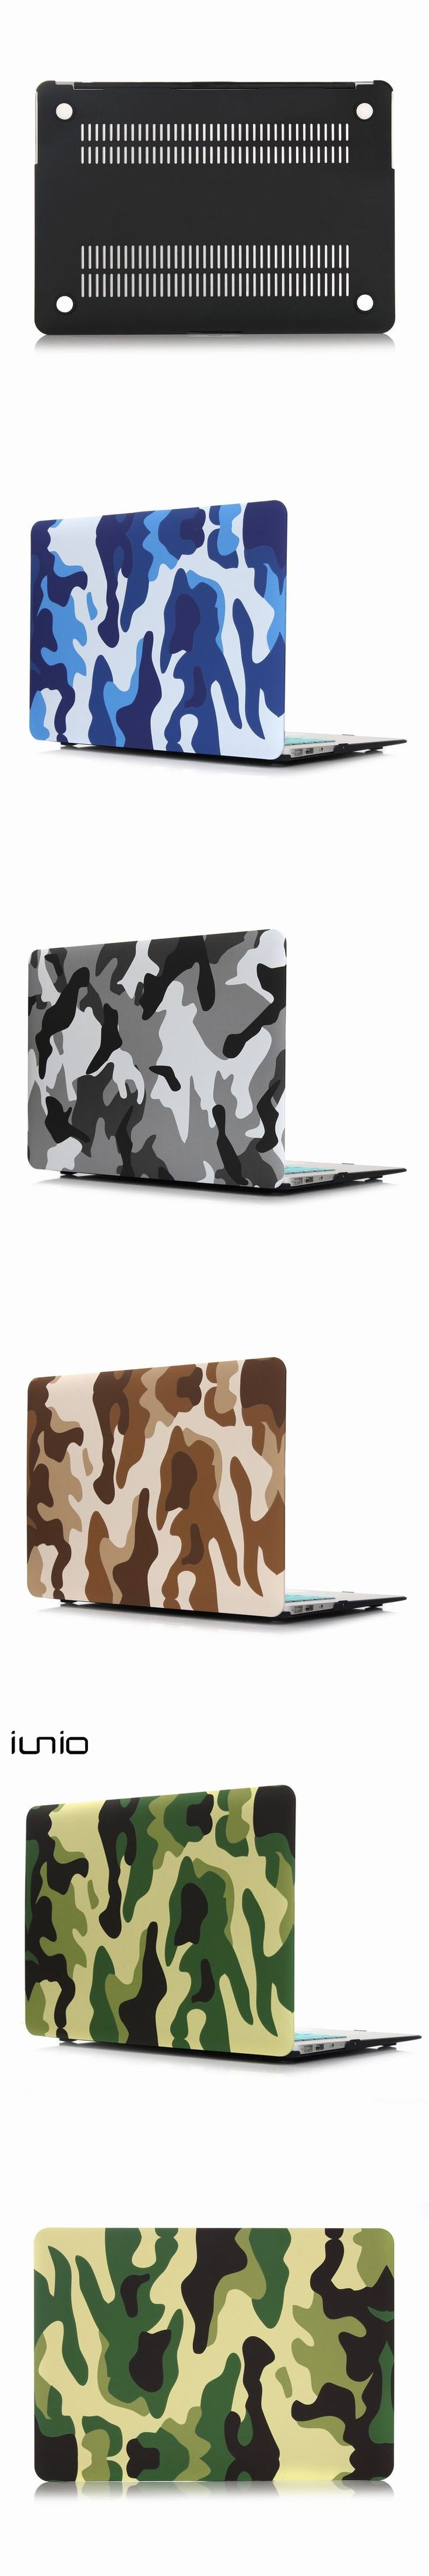 Military Camouflage Cover For Macbook Air 11 Case Hard Protective Case For Macbook Air 11.6 12 inch Laptop Bag Case For Mac Book